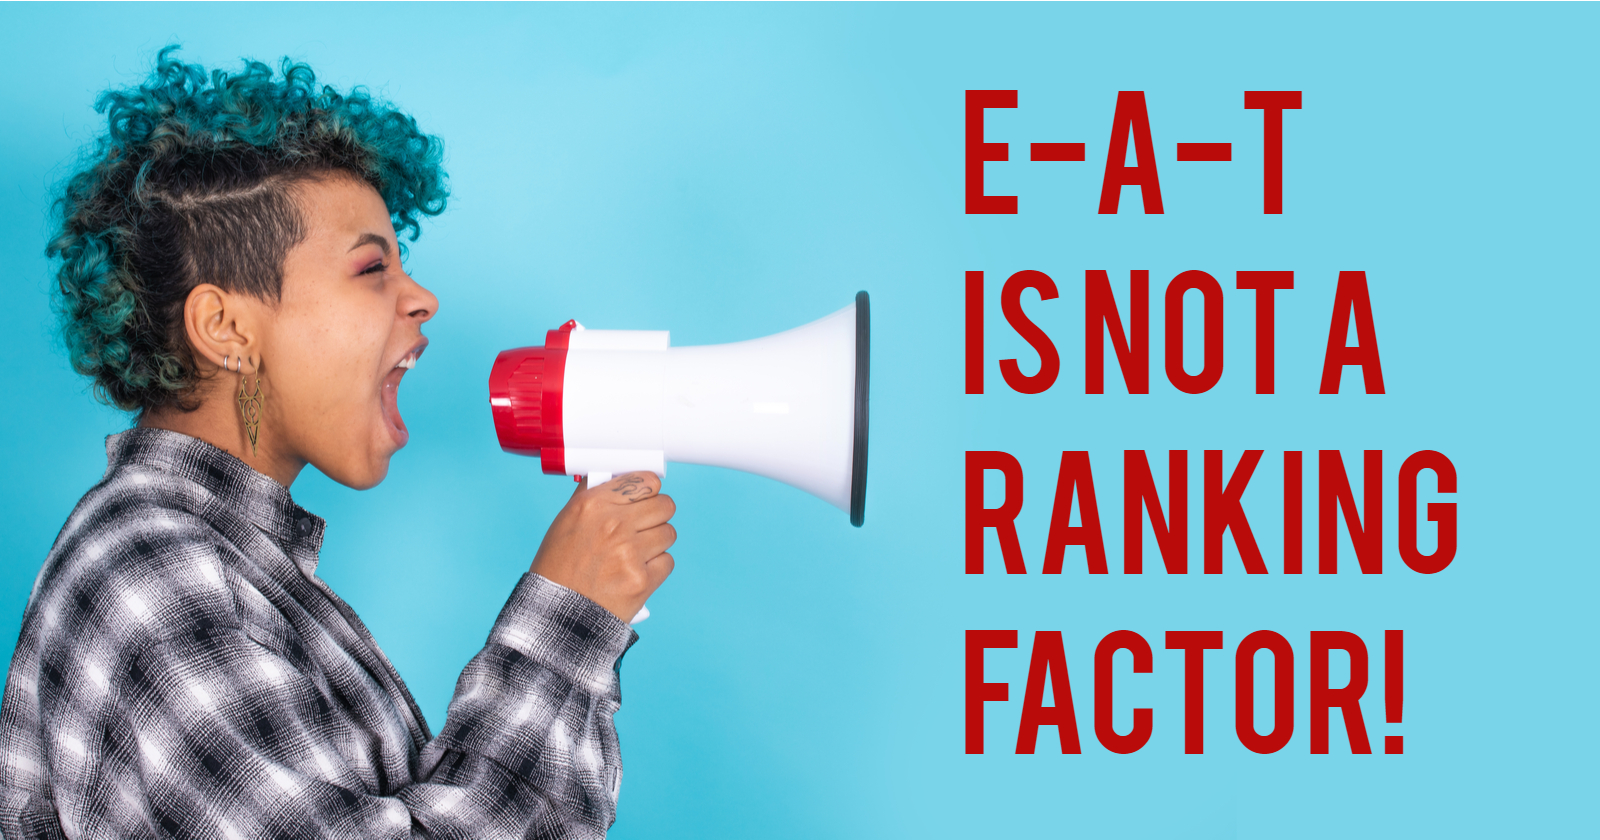 Woman announcing that E-A-T is not a ranking factor.